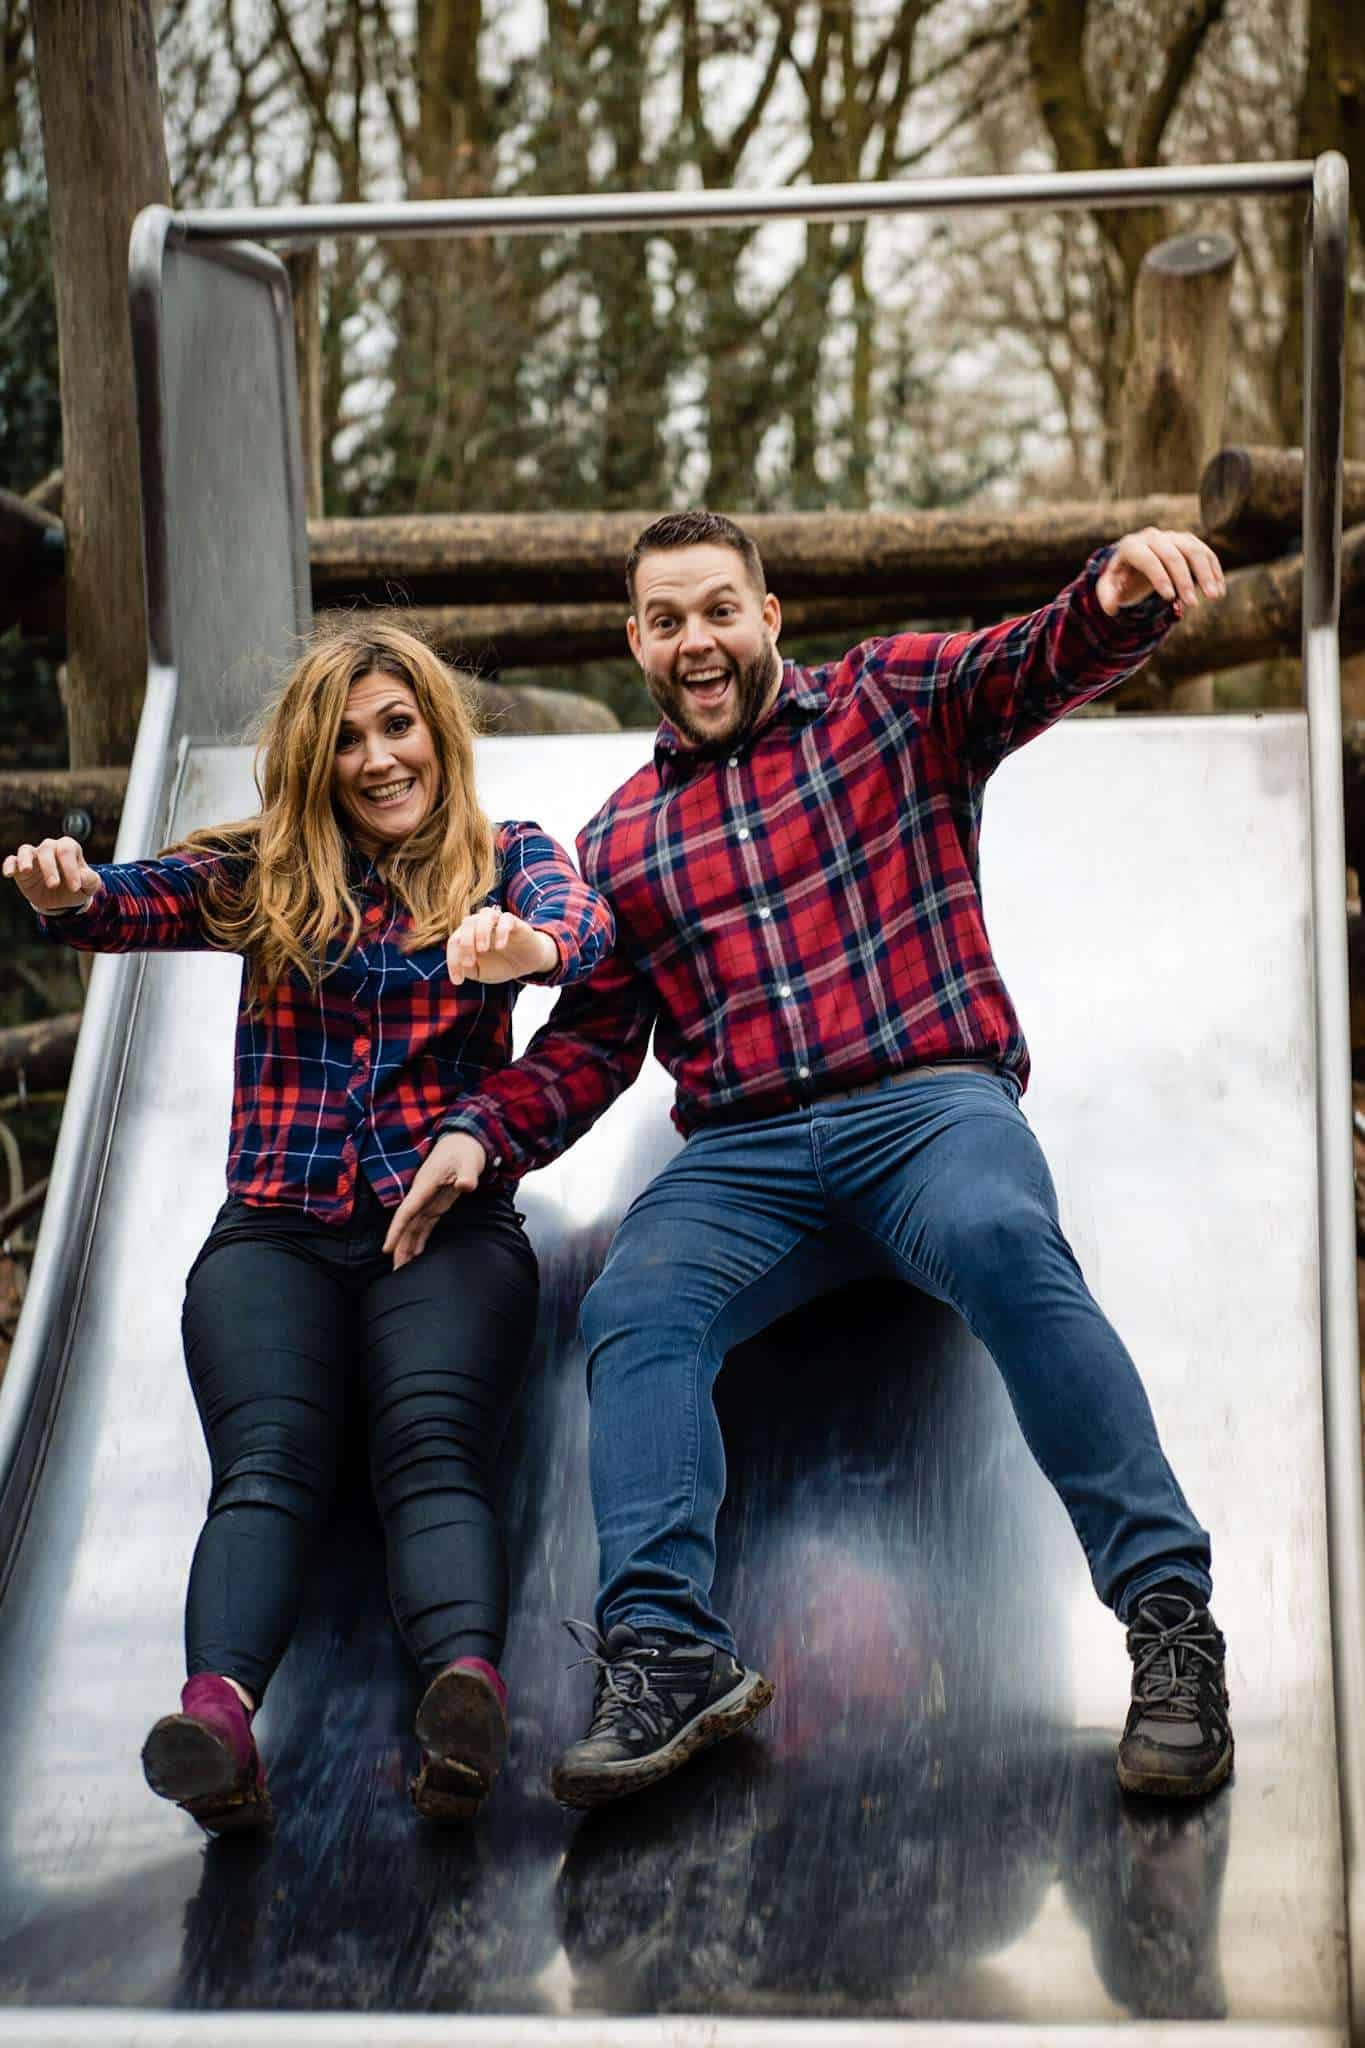 An engaged couple having fun on a slide during their engagement shoot